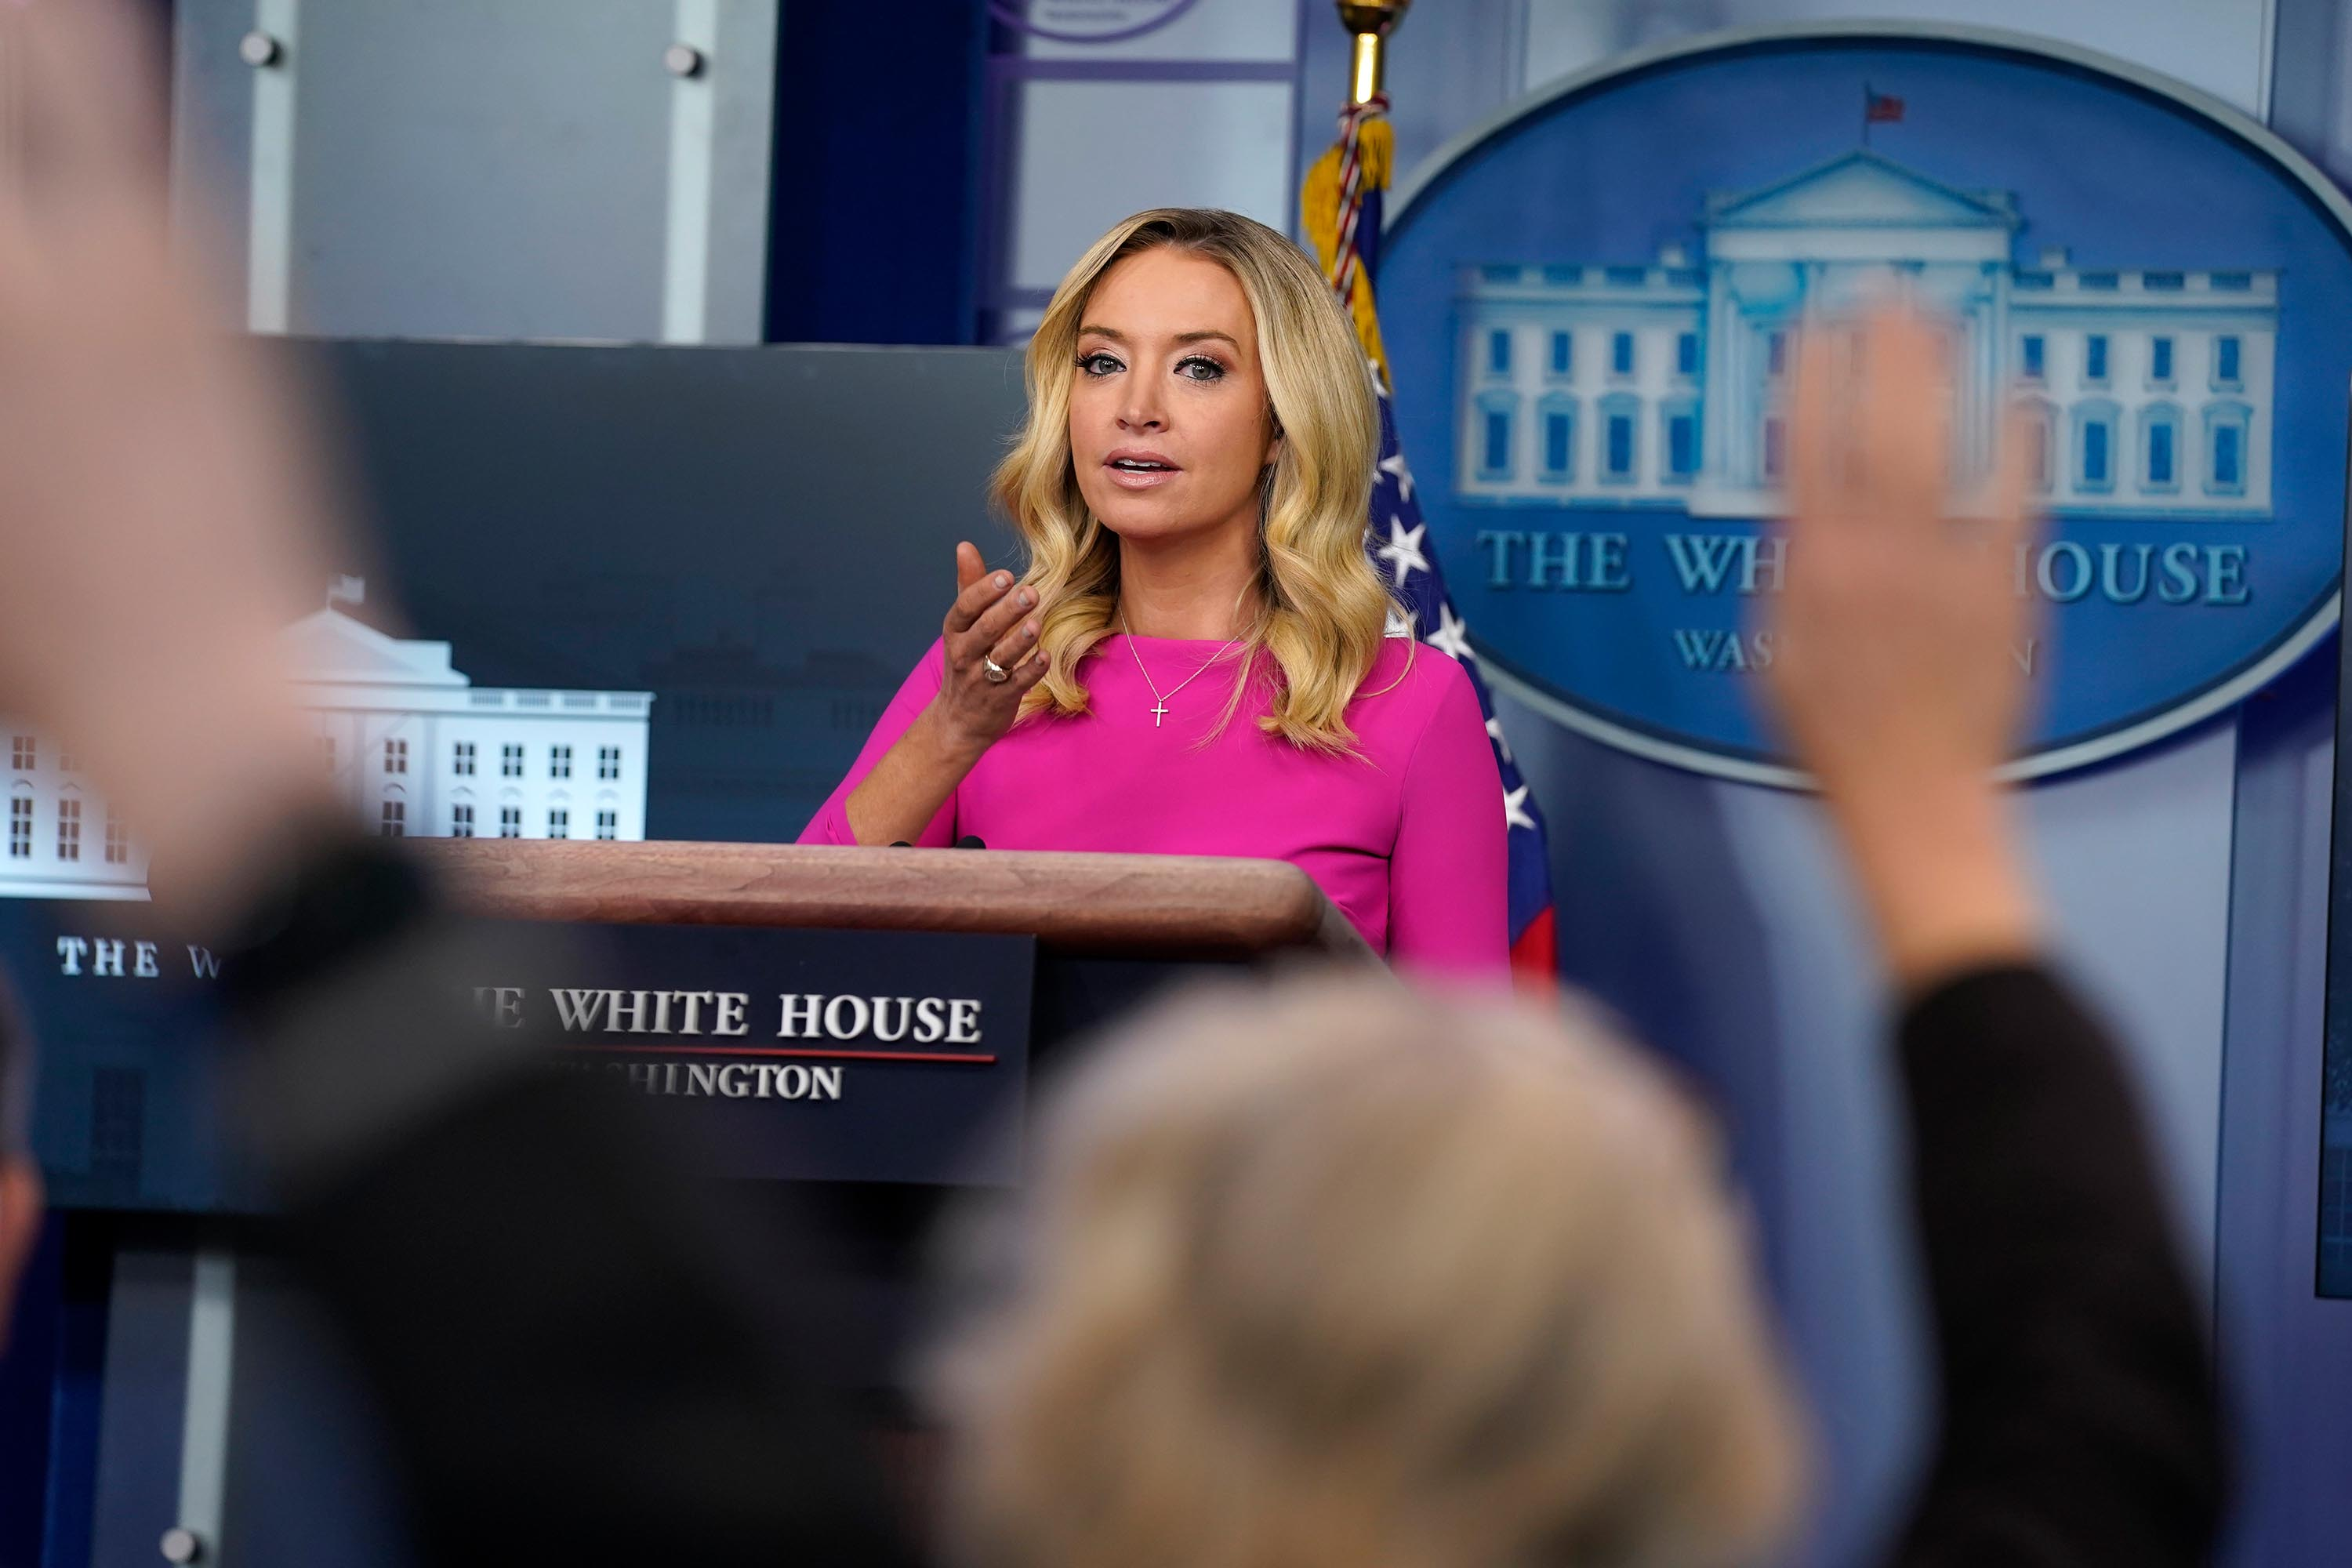 White House press secretary's husband attends briefing without a mask